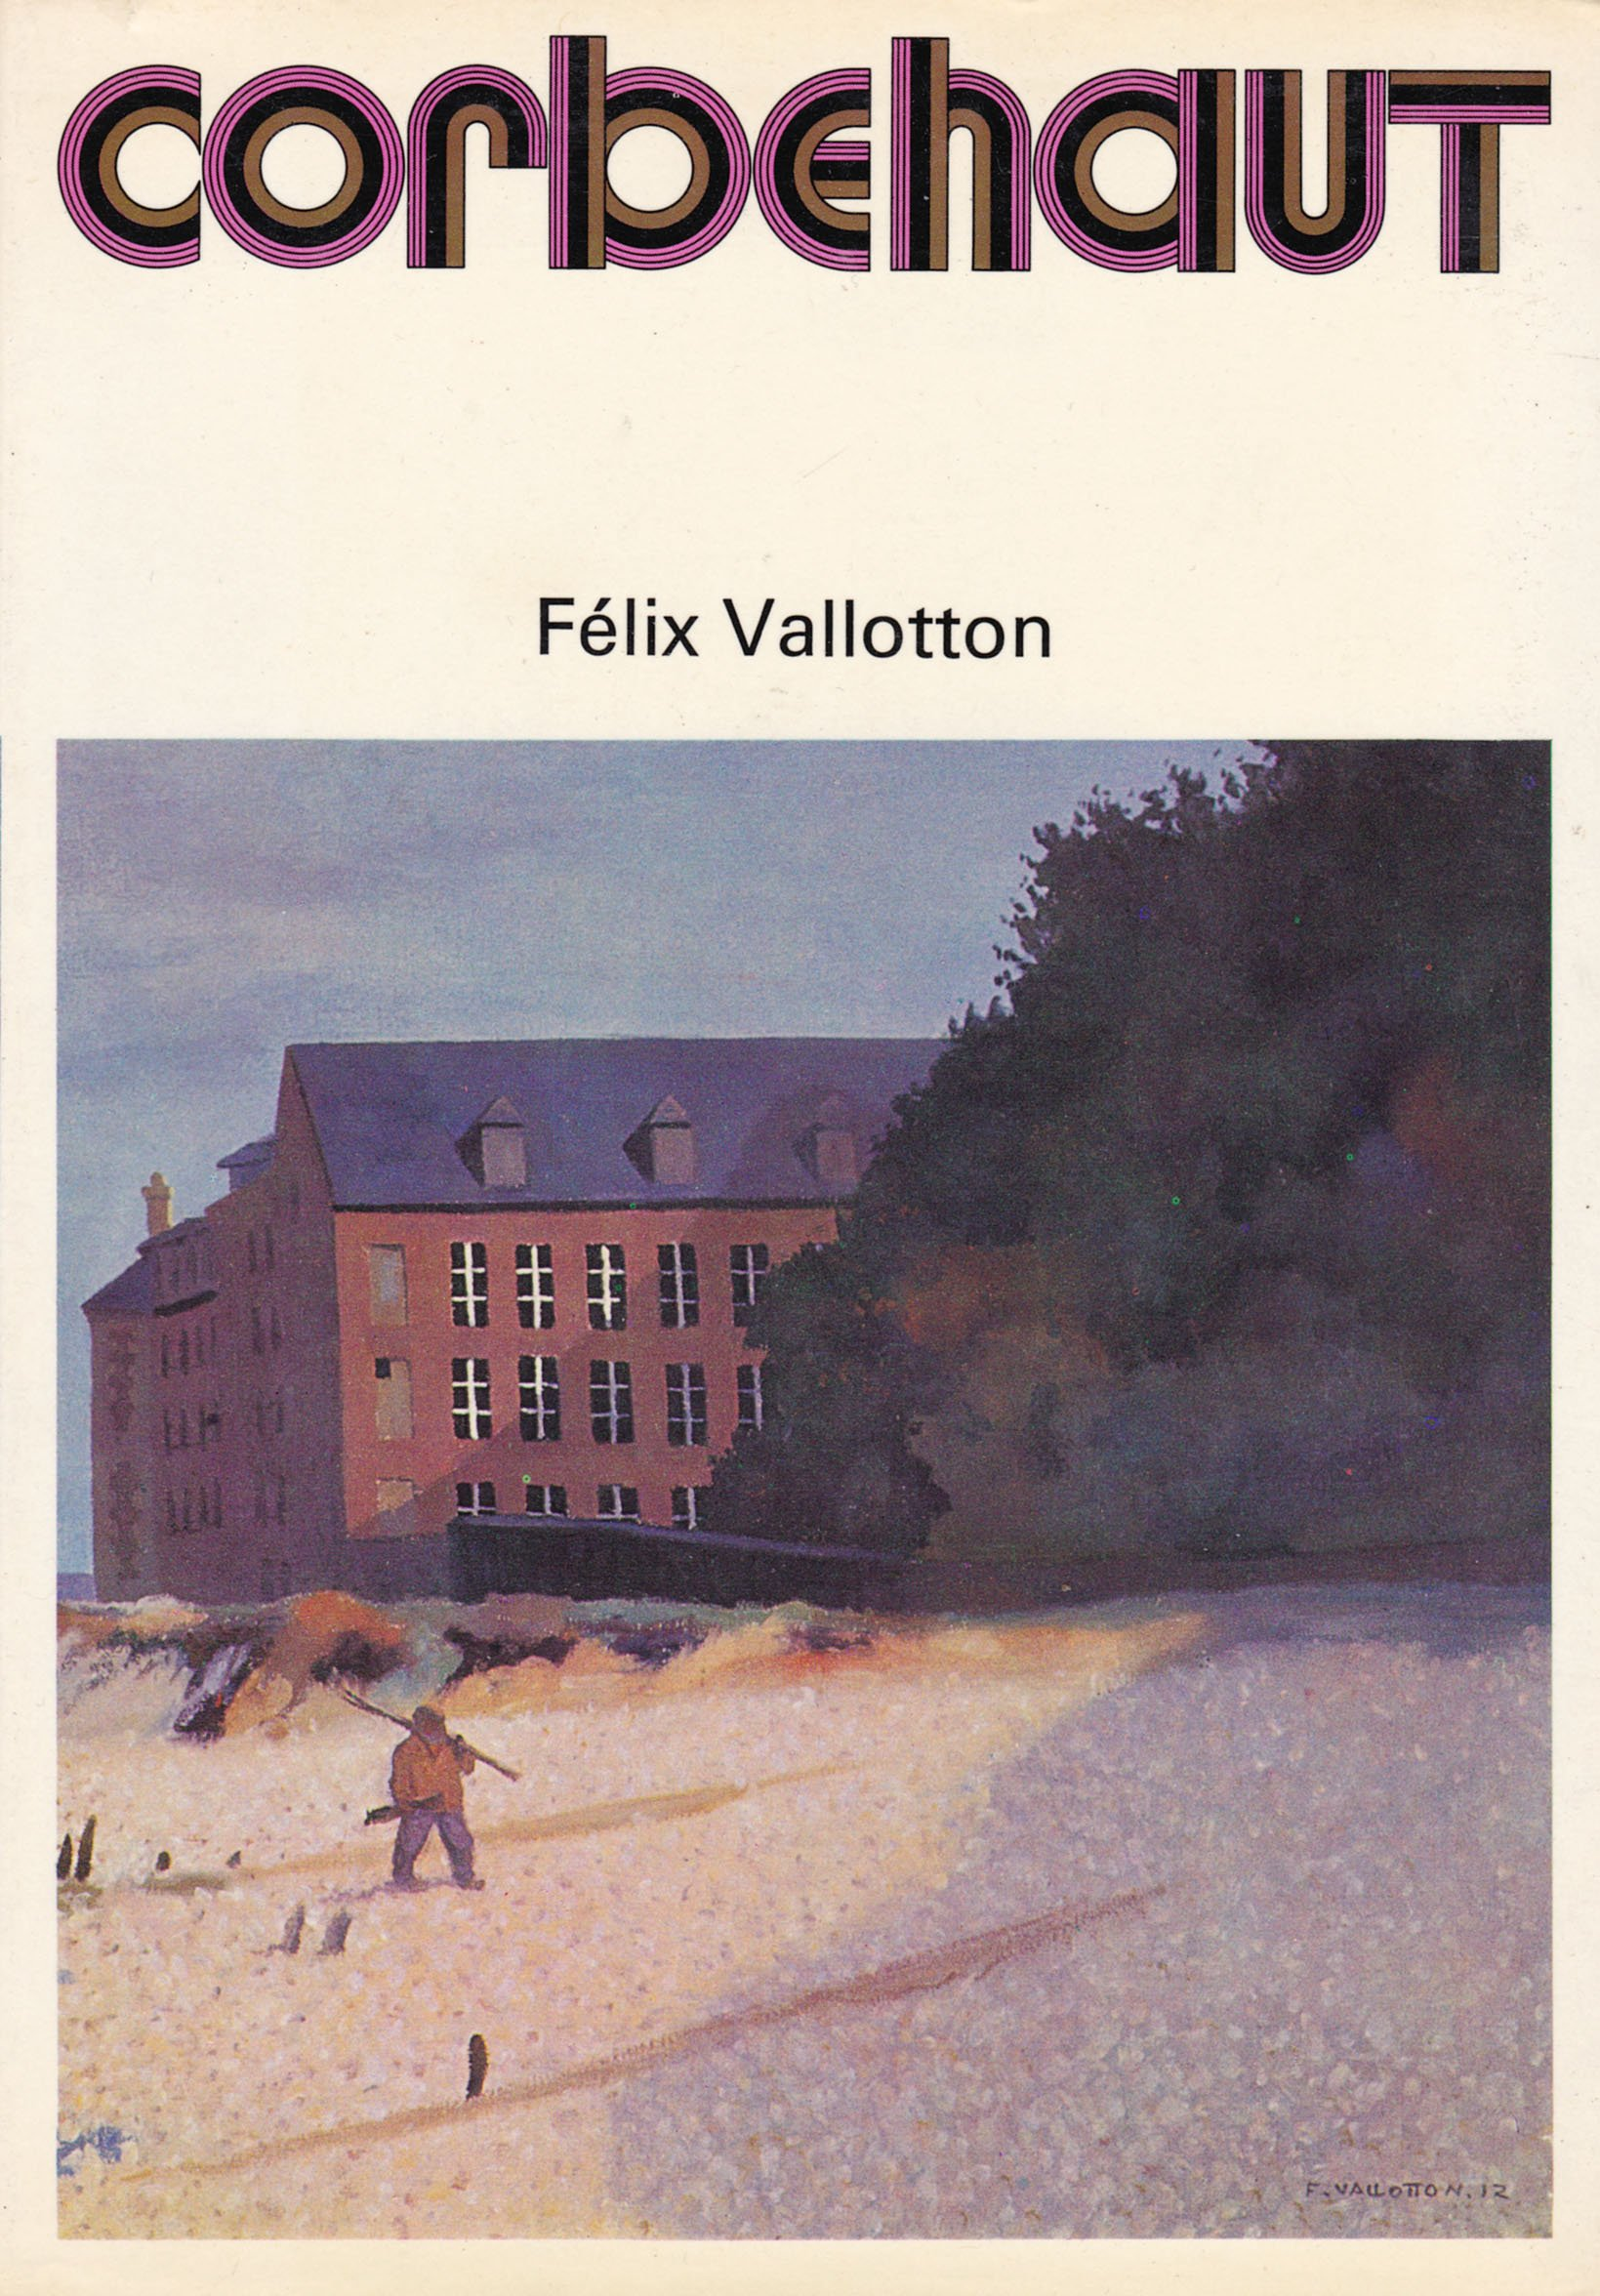 Corbehaut: Amazon.de: Felix Vallotton: Bücher